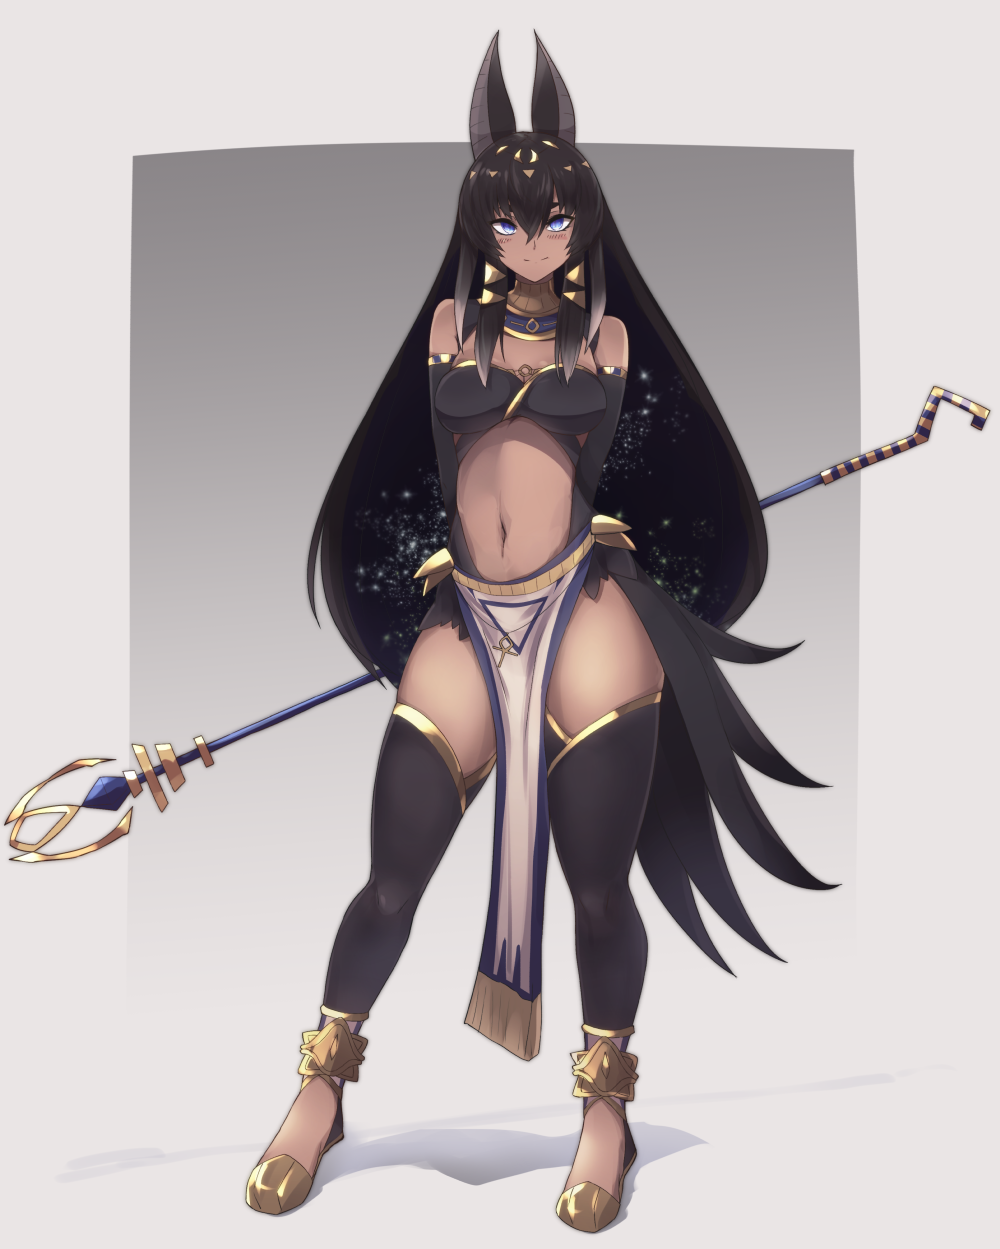 1girl alder animal_ears anubis arms_behind_back bangs black_hair black_legwear blue_eyes commentary dark_skin egyptian egyptian_mythology full_body hair_between_eyes highres jackal_ears jewelry long_hair looking_at_viewer navel original pelvic_curtain simple_background smile solo staff standing thigh-highs very_long_hair